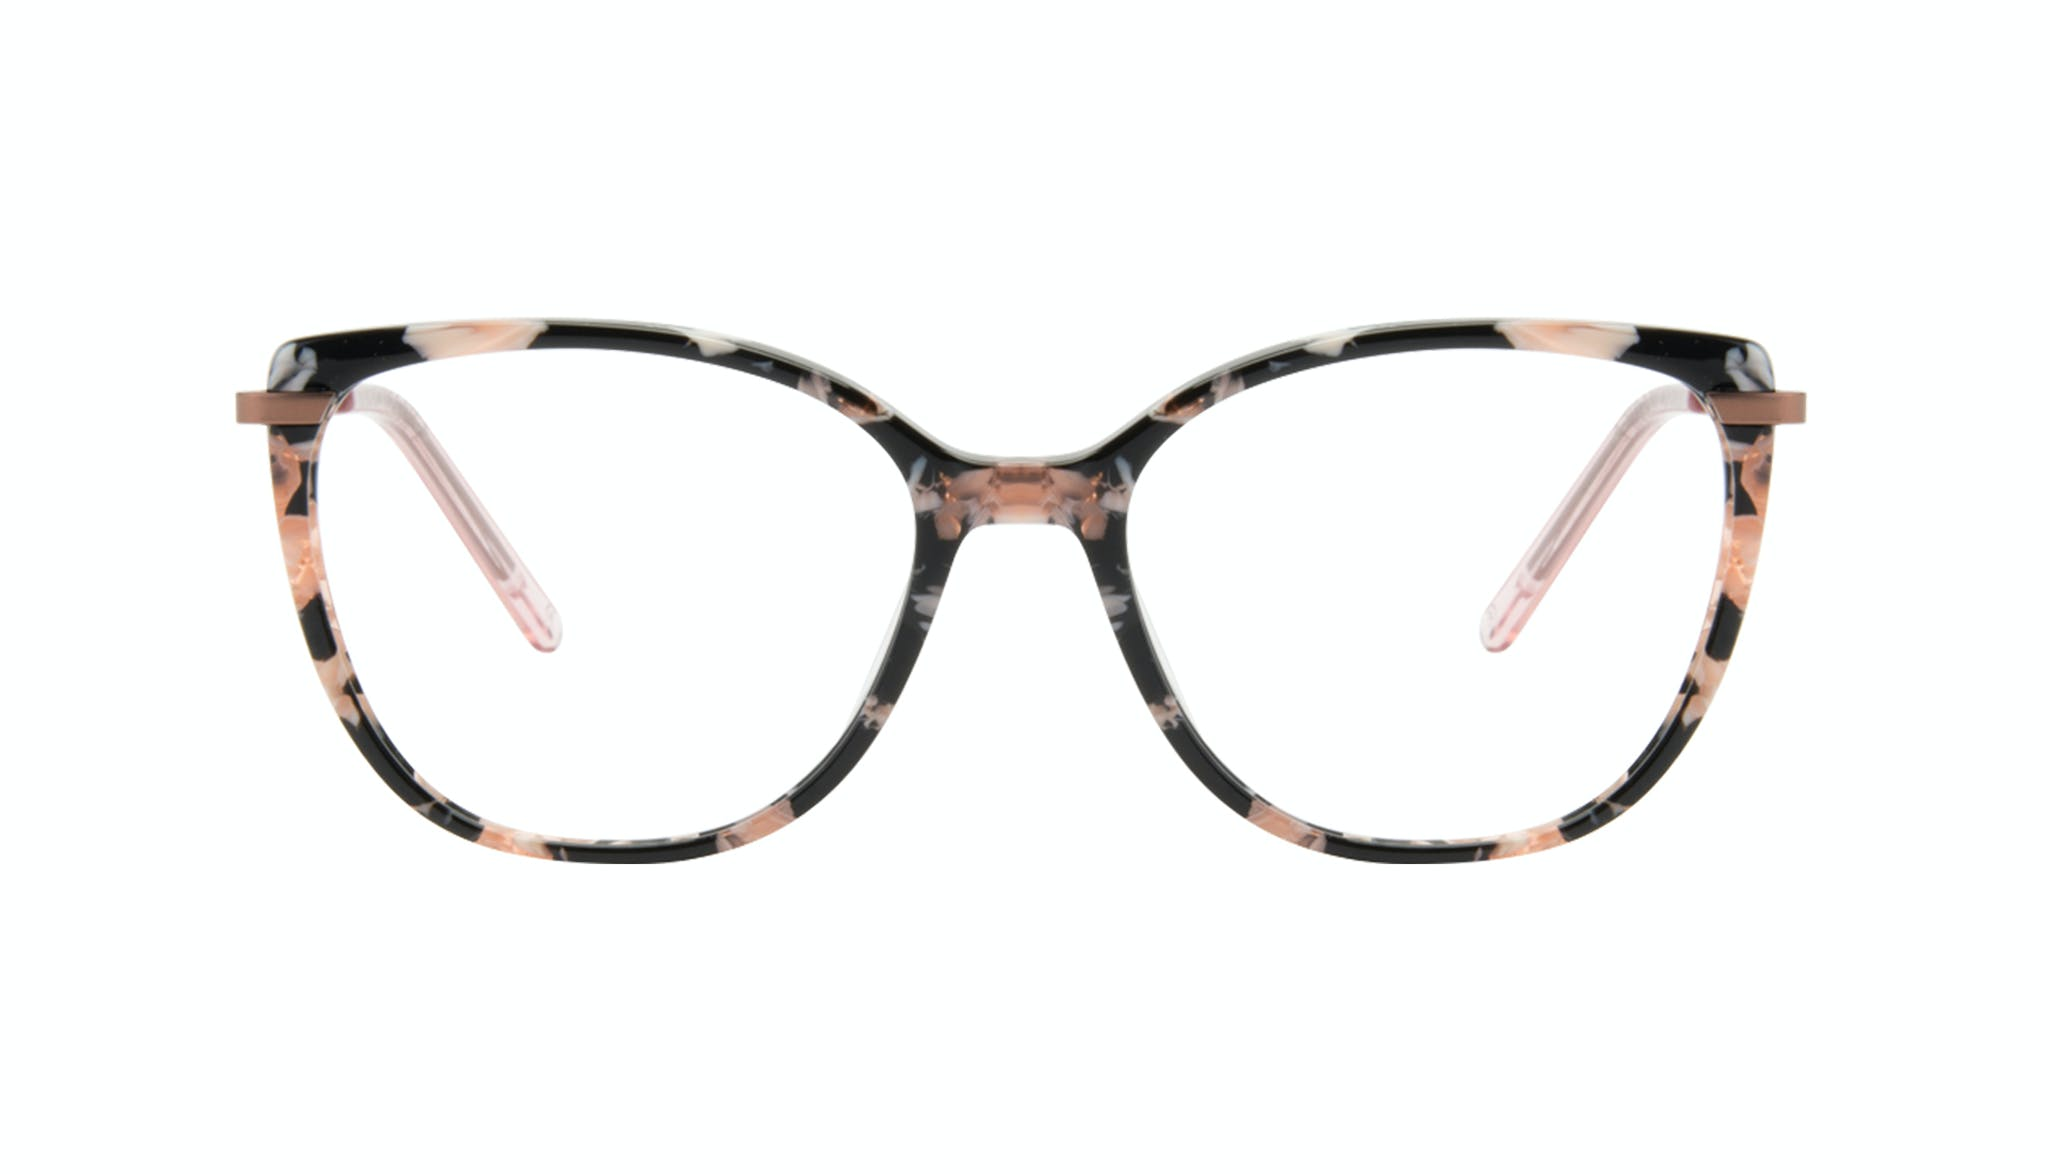 Affordable Fashion Glasses Cat Eye Rectangle Square Eyeglasses Women Illusion Licorice Front